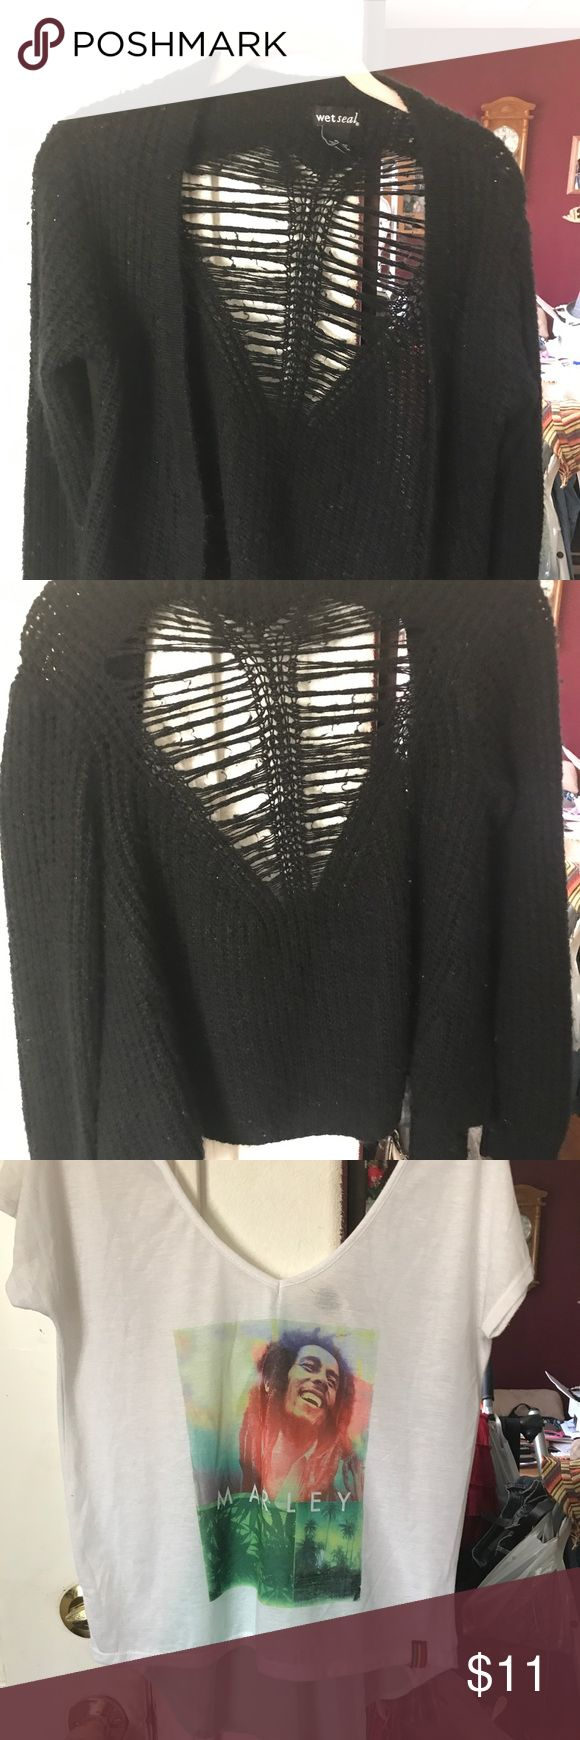 Wet seal sweater, bob Marley nwot top Black wetseal sz med (goes to waist) has heart detail on back... Nwot Bob Marley white an green top sz med . Gorgeous (sadly I'm too tall for it to fit shoes my tummy and I hate that haha) bundle or and make offers!! wetseal etc Sweaters